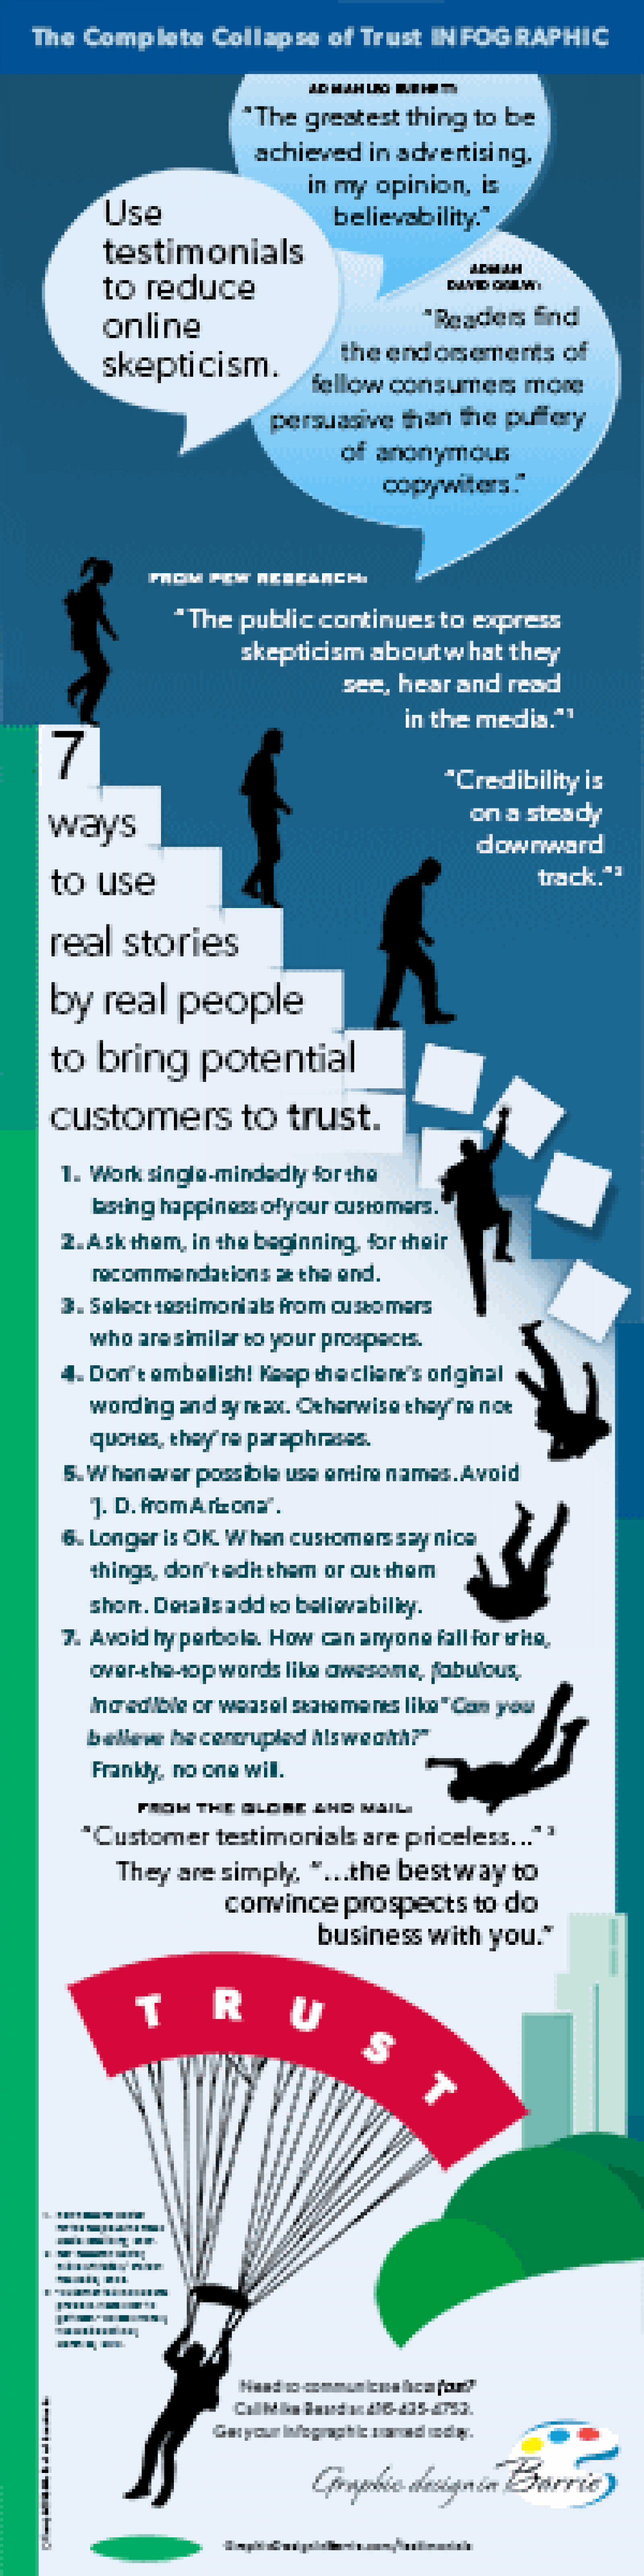 Use Testimonials to Reduce Online Skepticism Infographic